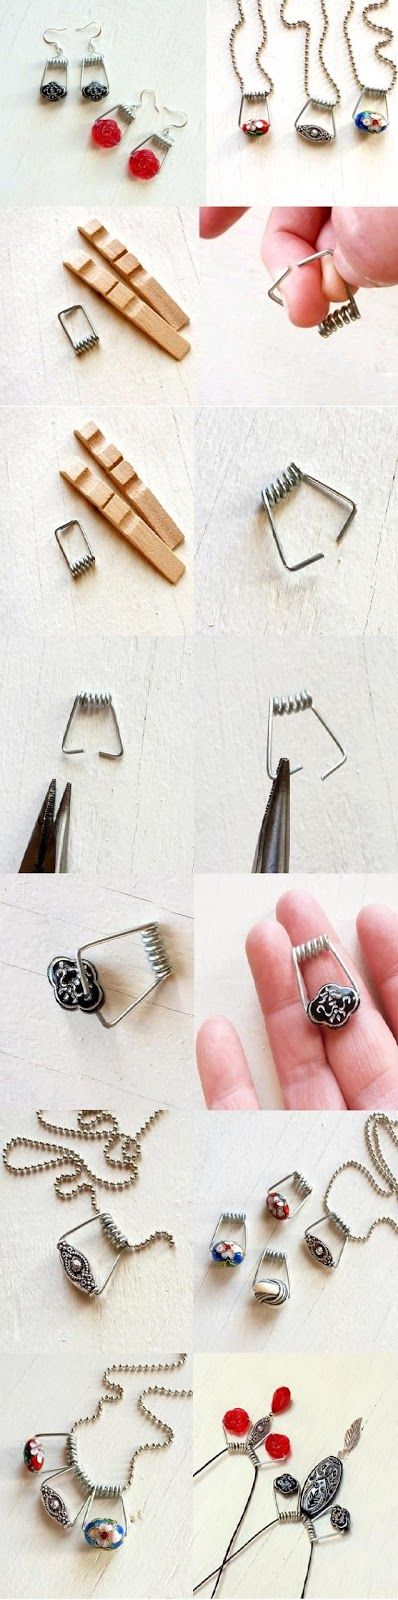 Creative Stuff: DIY Clothespin Jewelry This is pretty smart! I love this idea!